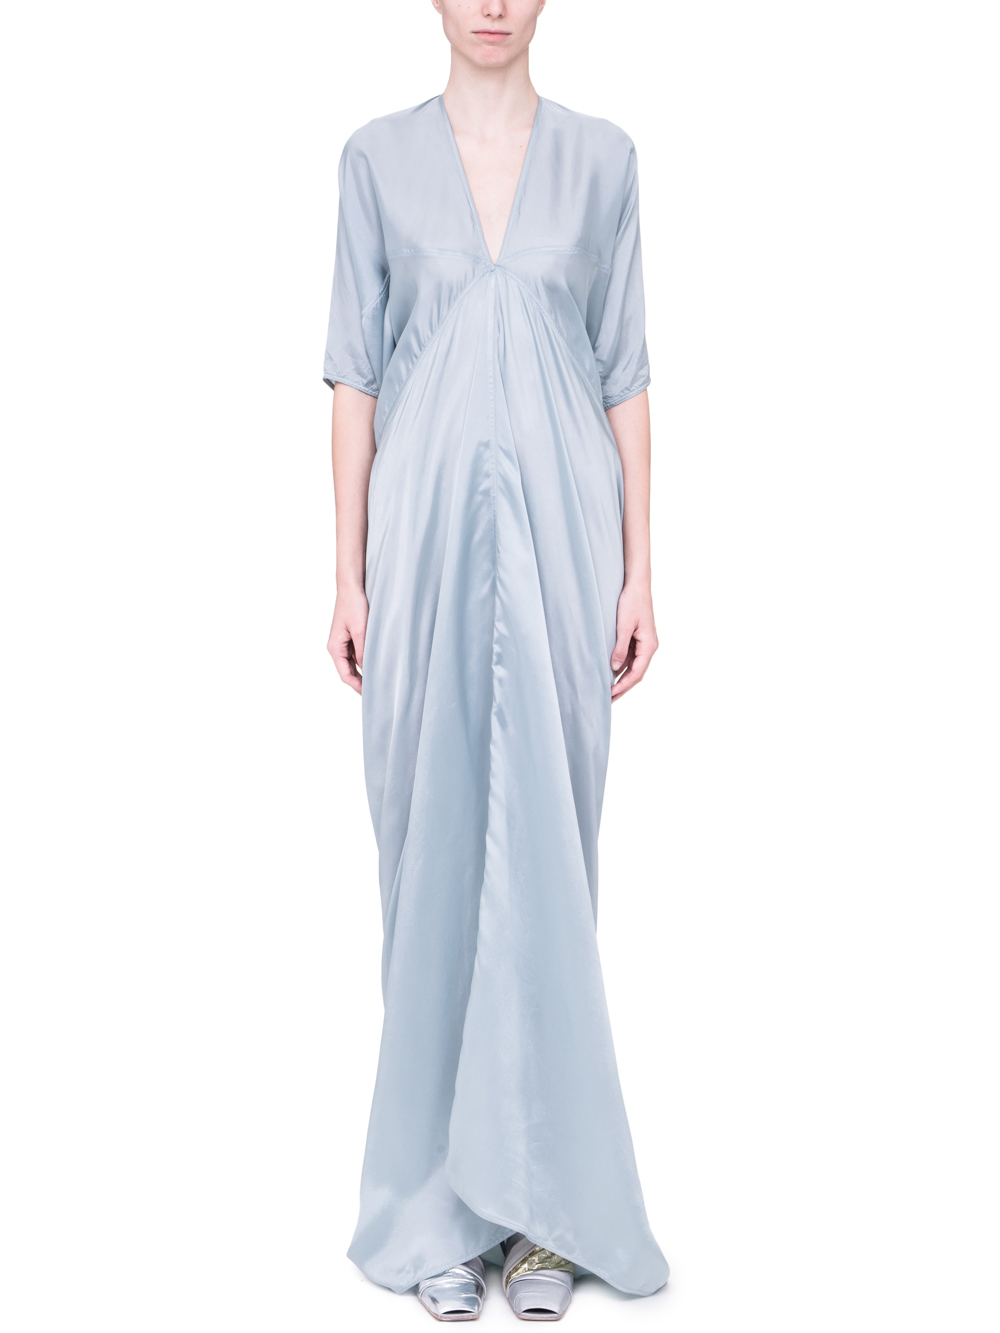 620c2f709317 RICK OWENS SS19 BABEL KITE GOWN IN AQUA LIGHT BLUE CUPRO